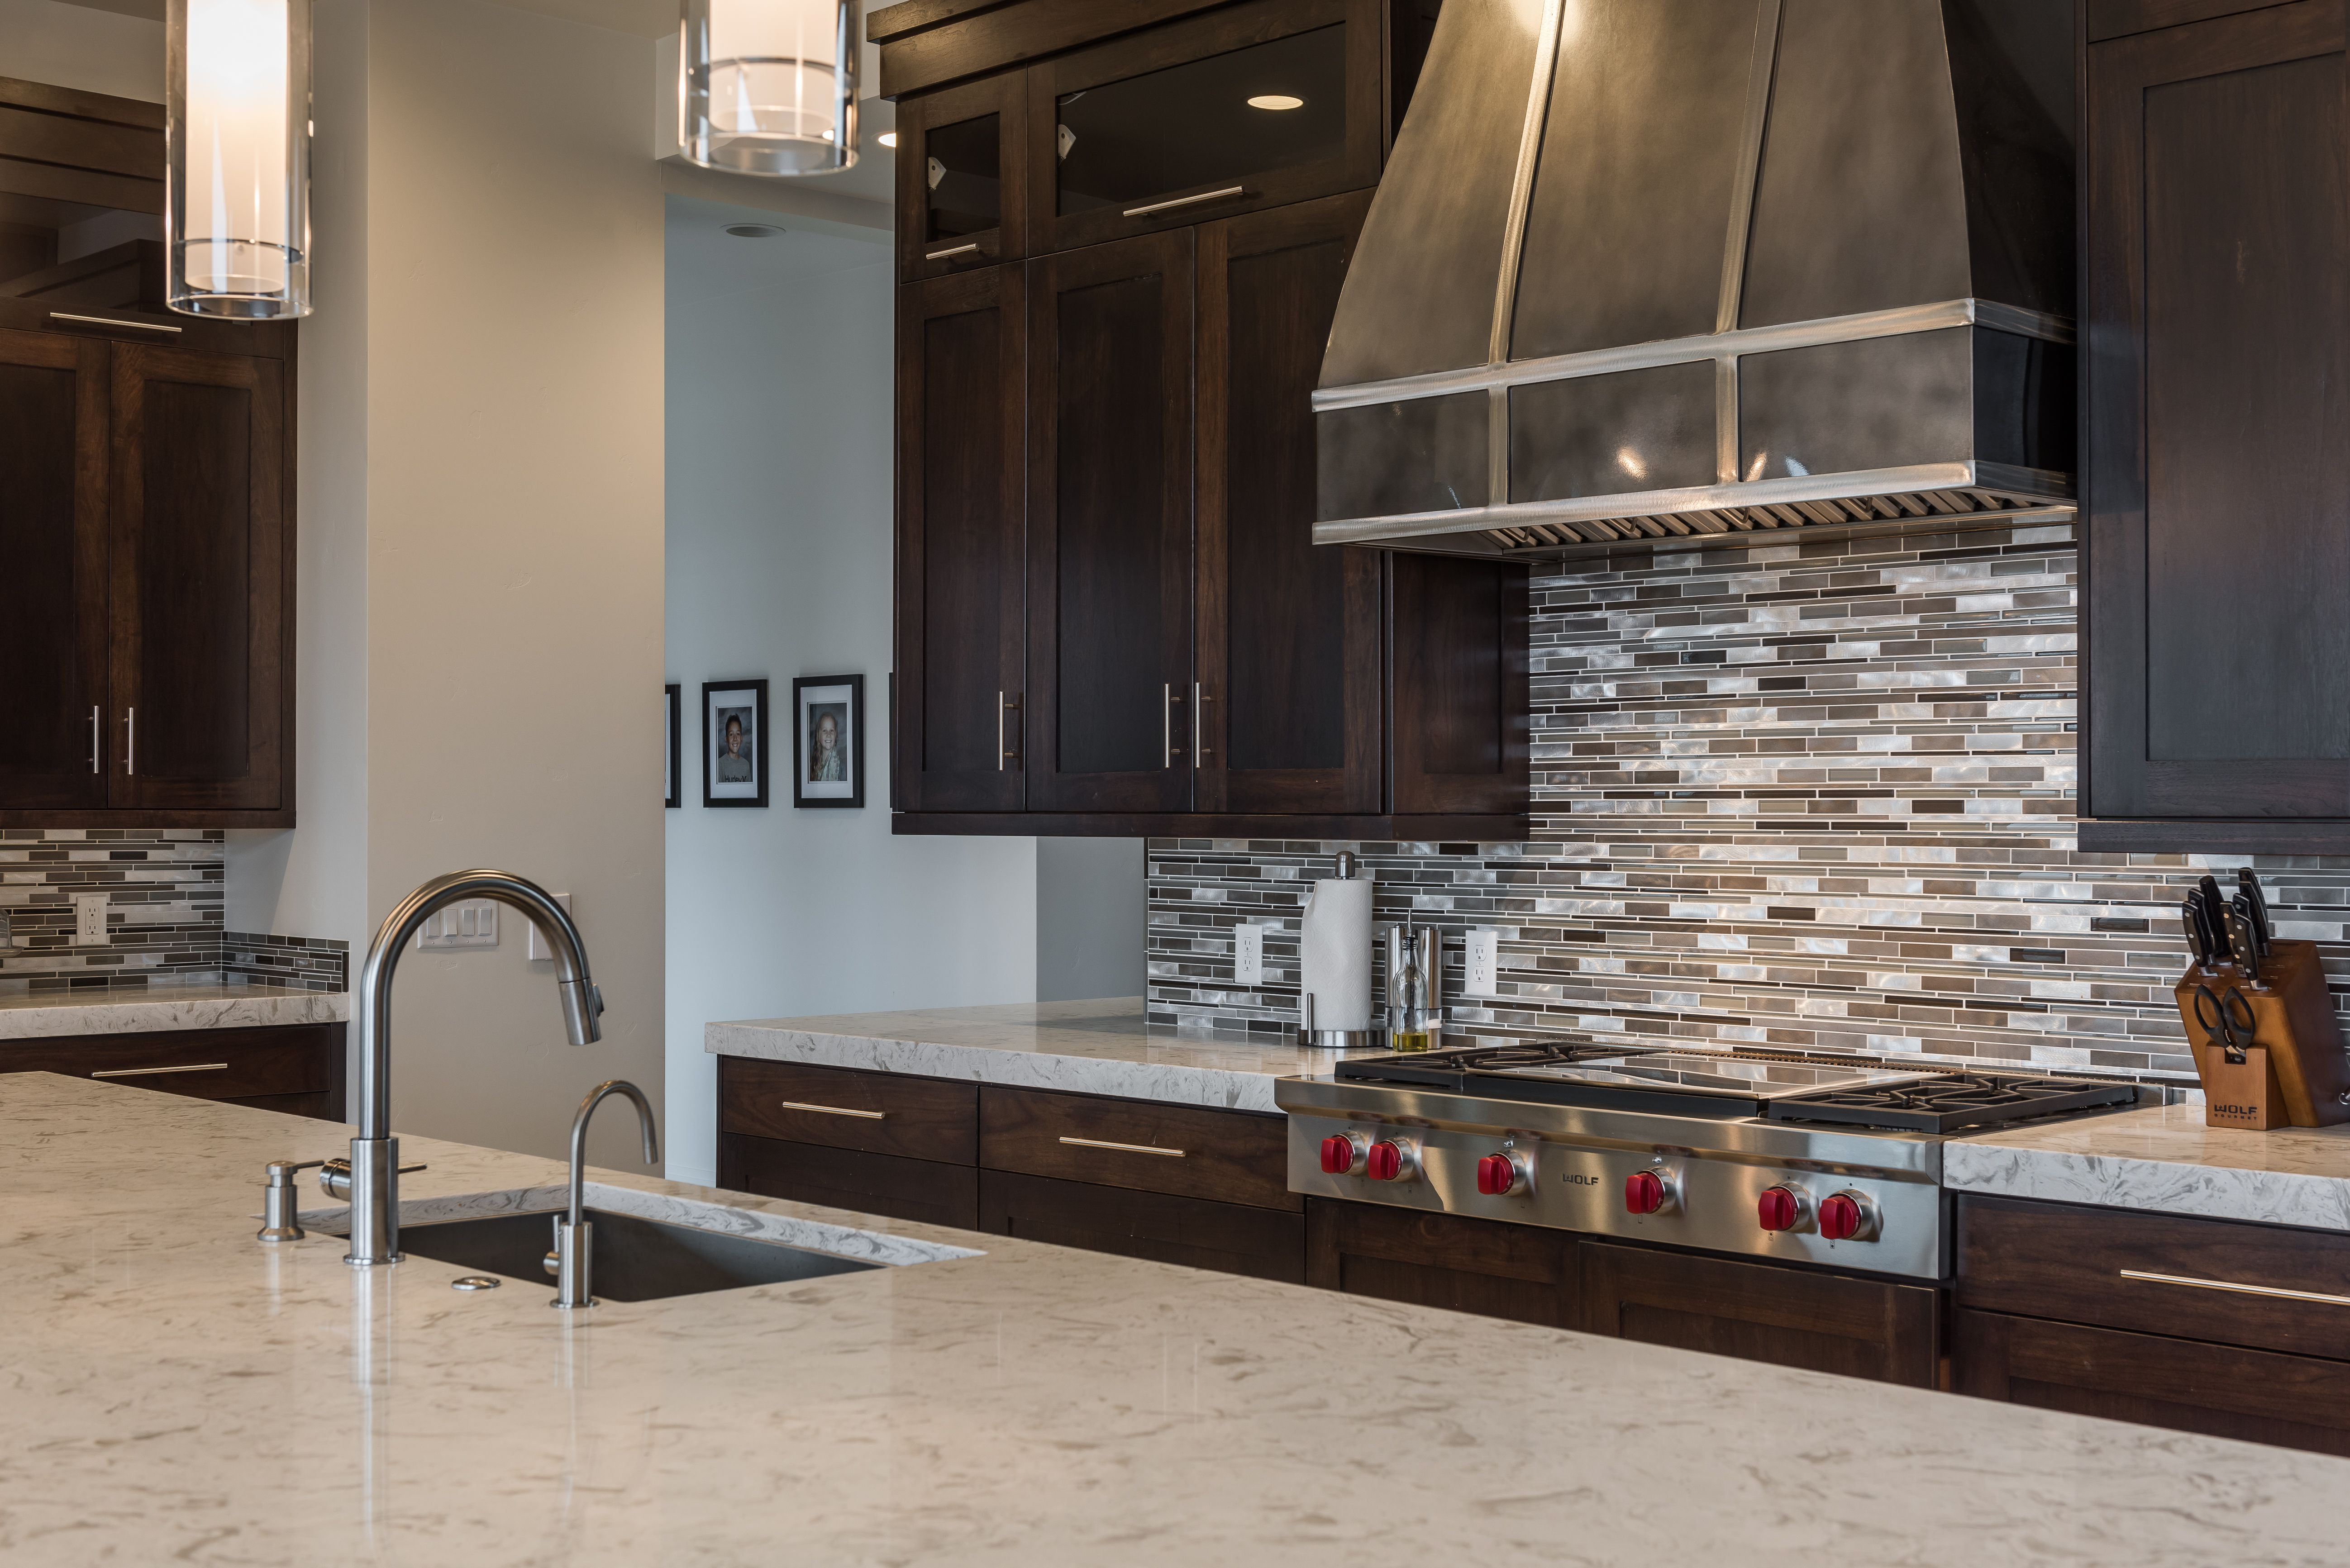 Home - Countertop Source